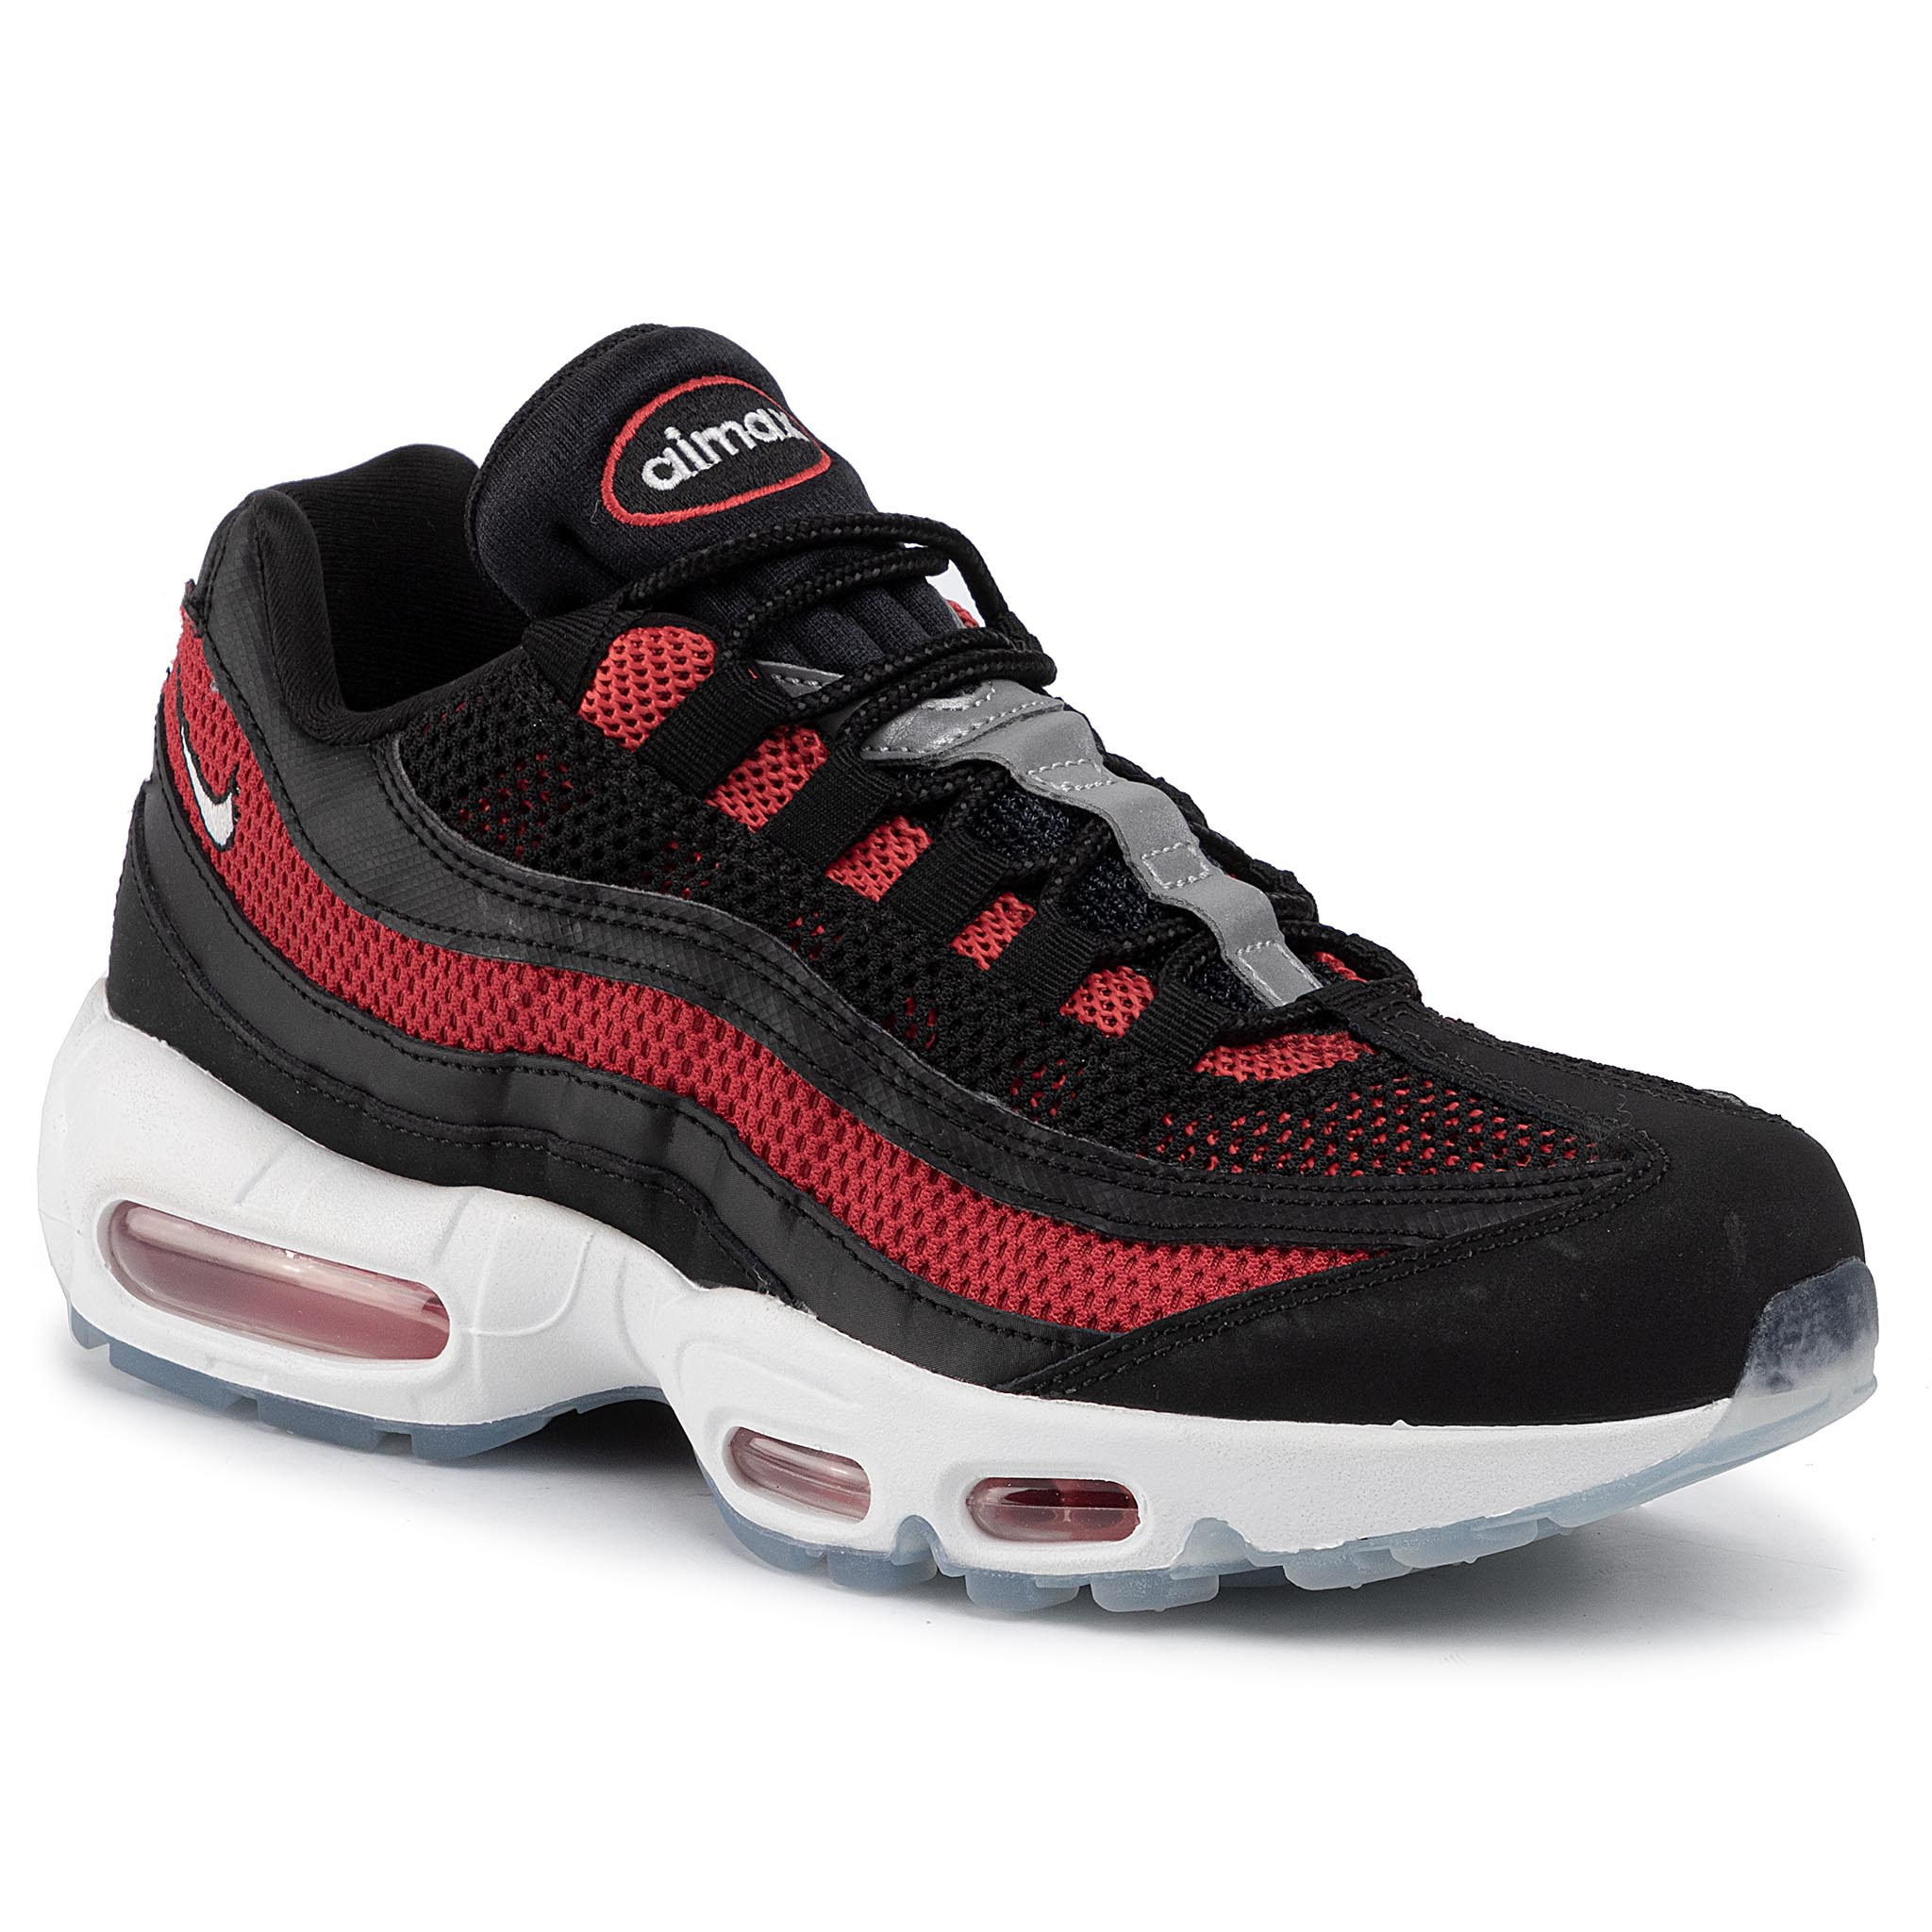 Pantofi NIKE - Air Max 95 Essential 749766 039 Black/White/University Red